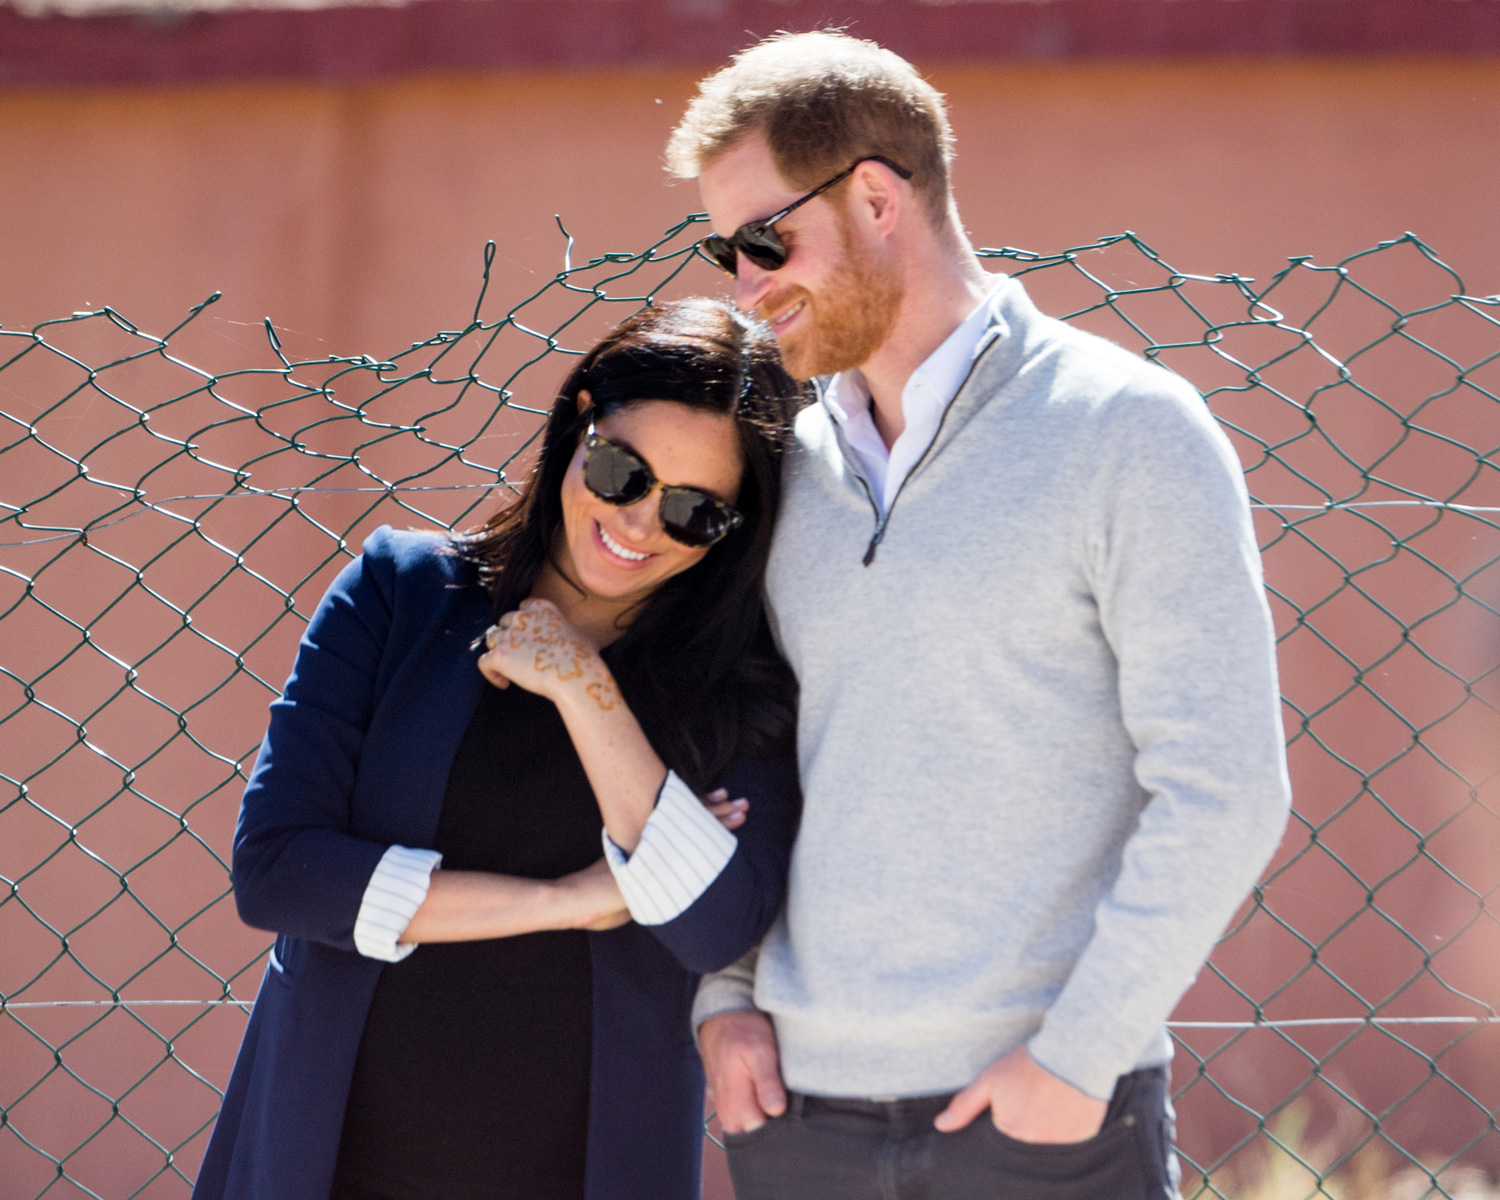 Meghan Markle and Prince Harry's Morocco Trip Was Packed With PDA (Including Him Playing With Her Hair)